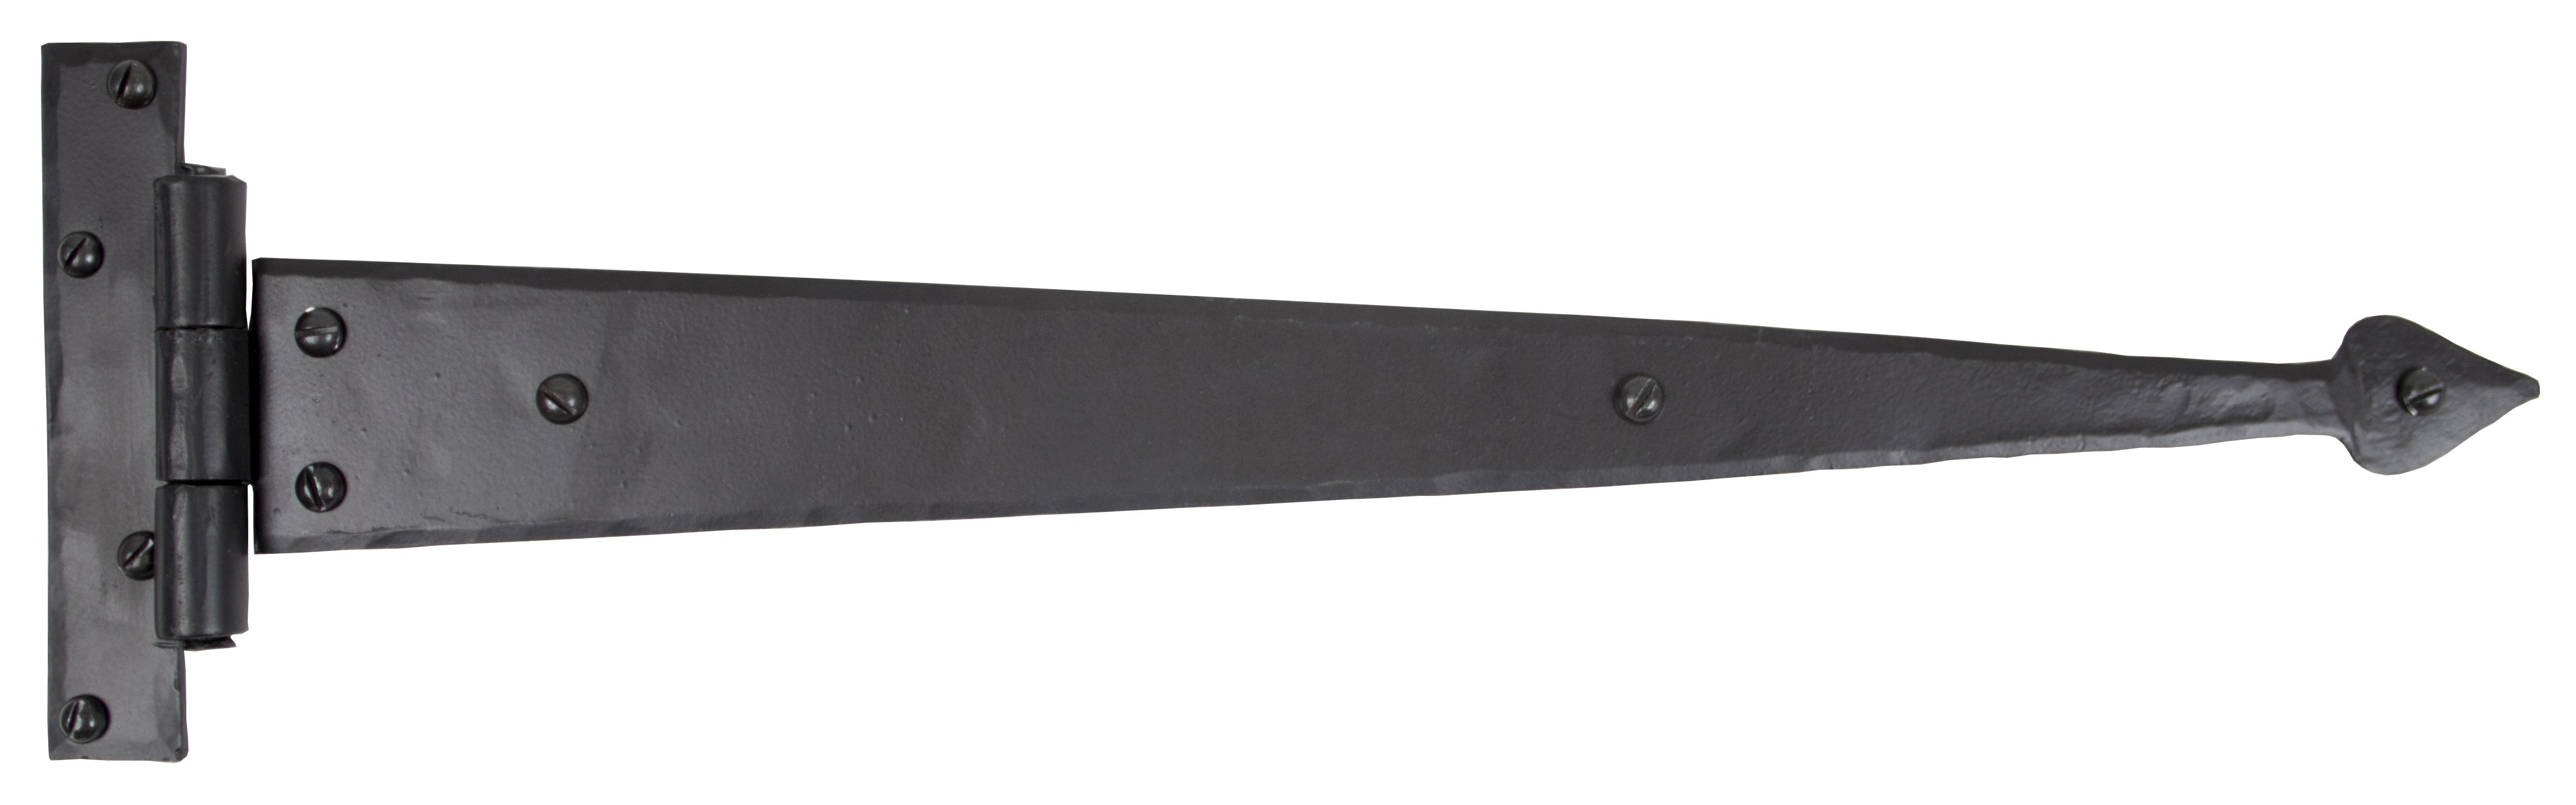 "Black 18"" Arrow Head Hinge (pair)"